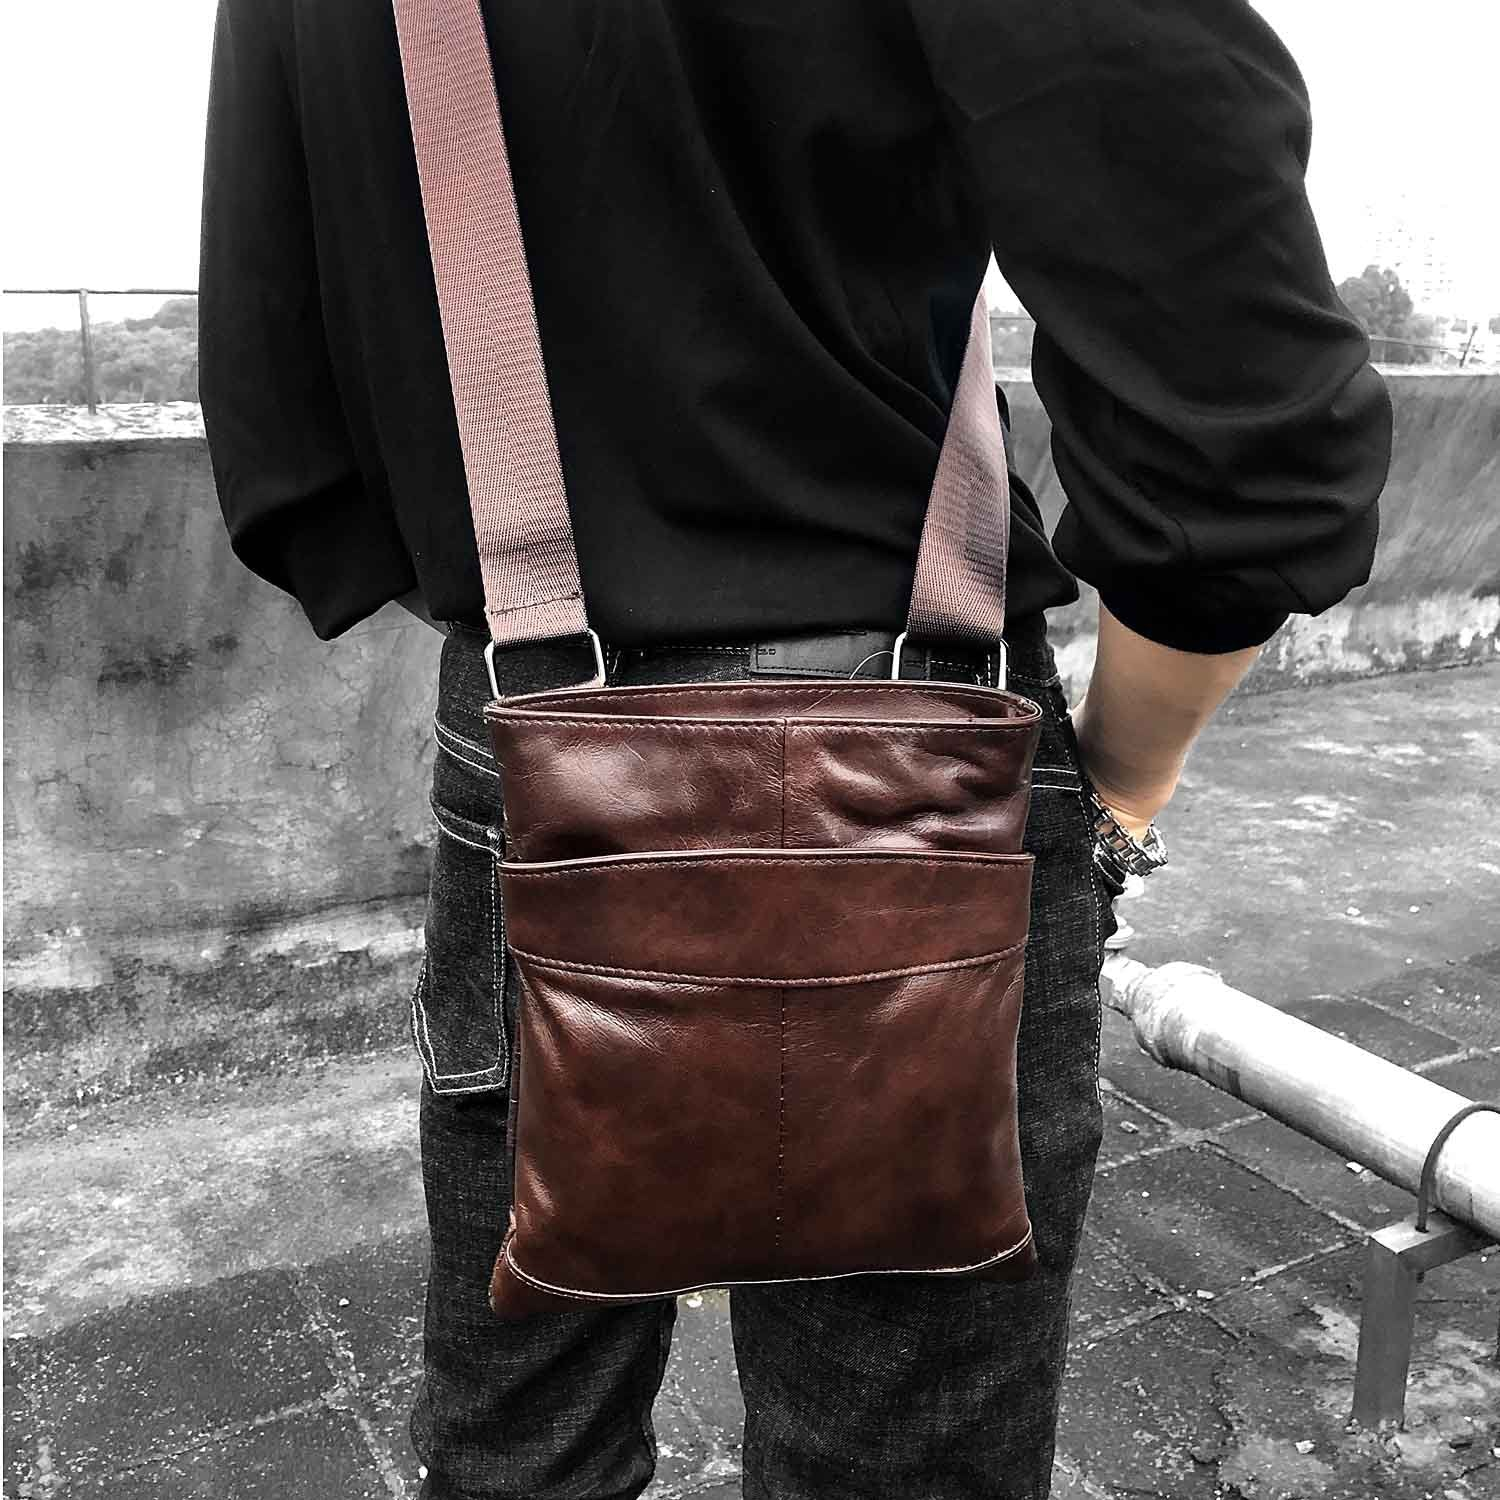 Casual Brown LEATHER MENS SMALL VERTICAL Postman BAG Brown SIDE BAGS Cool COURIER BAG MESSENGER BAG FOR MEN